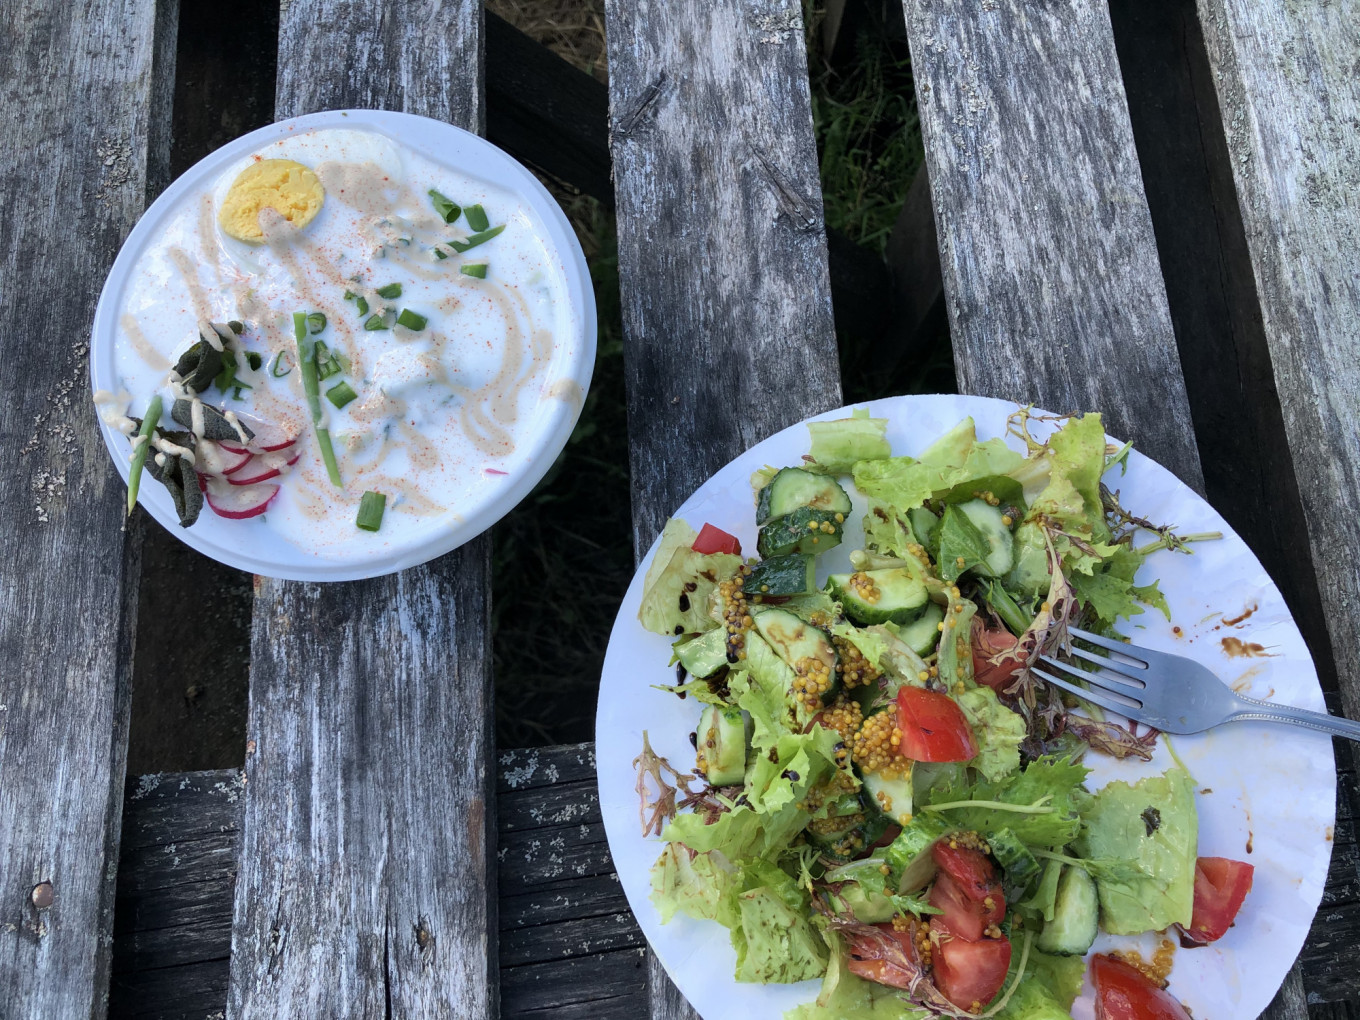 Lunch at the Ferma Cafe: Russian okroshka made with kefir and a fresh vegetable salad. Samantha Berkhead / MT